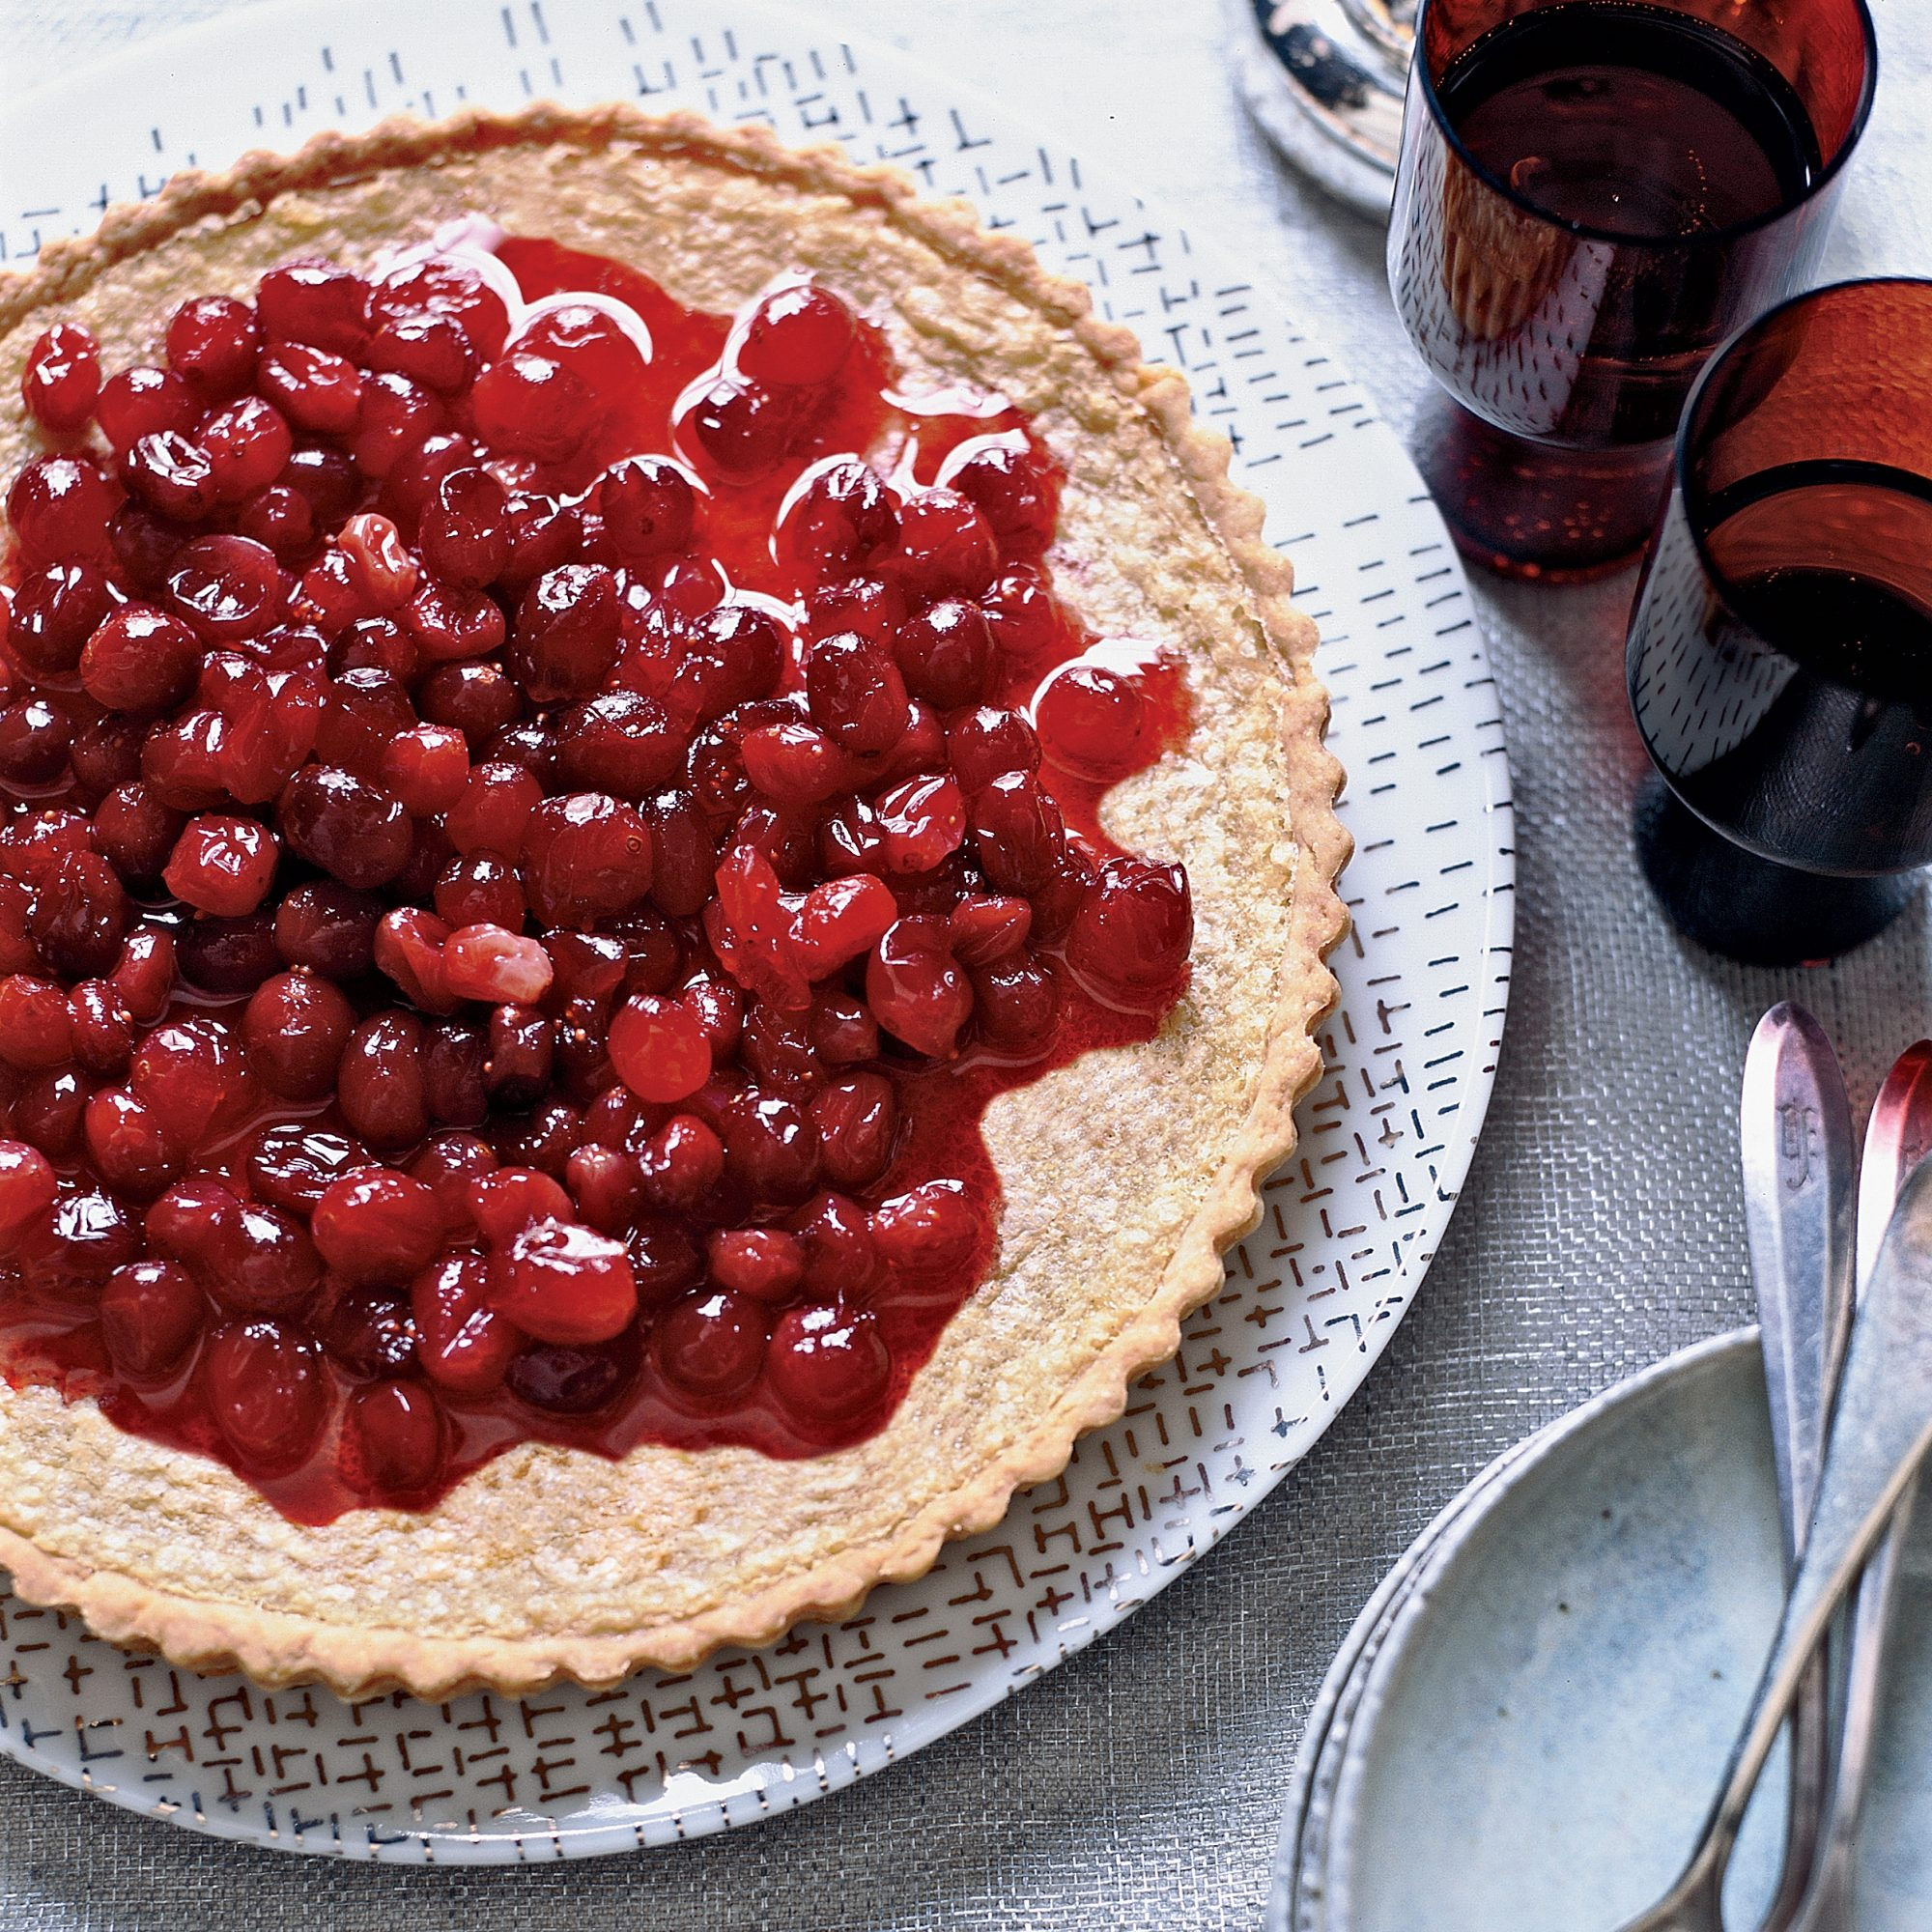 HD-200912-r-brown-butter-cranberry-tart.jpg